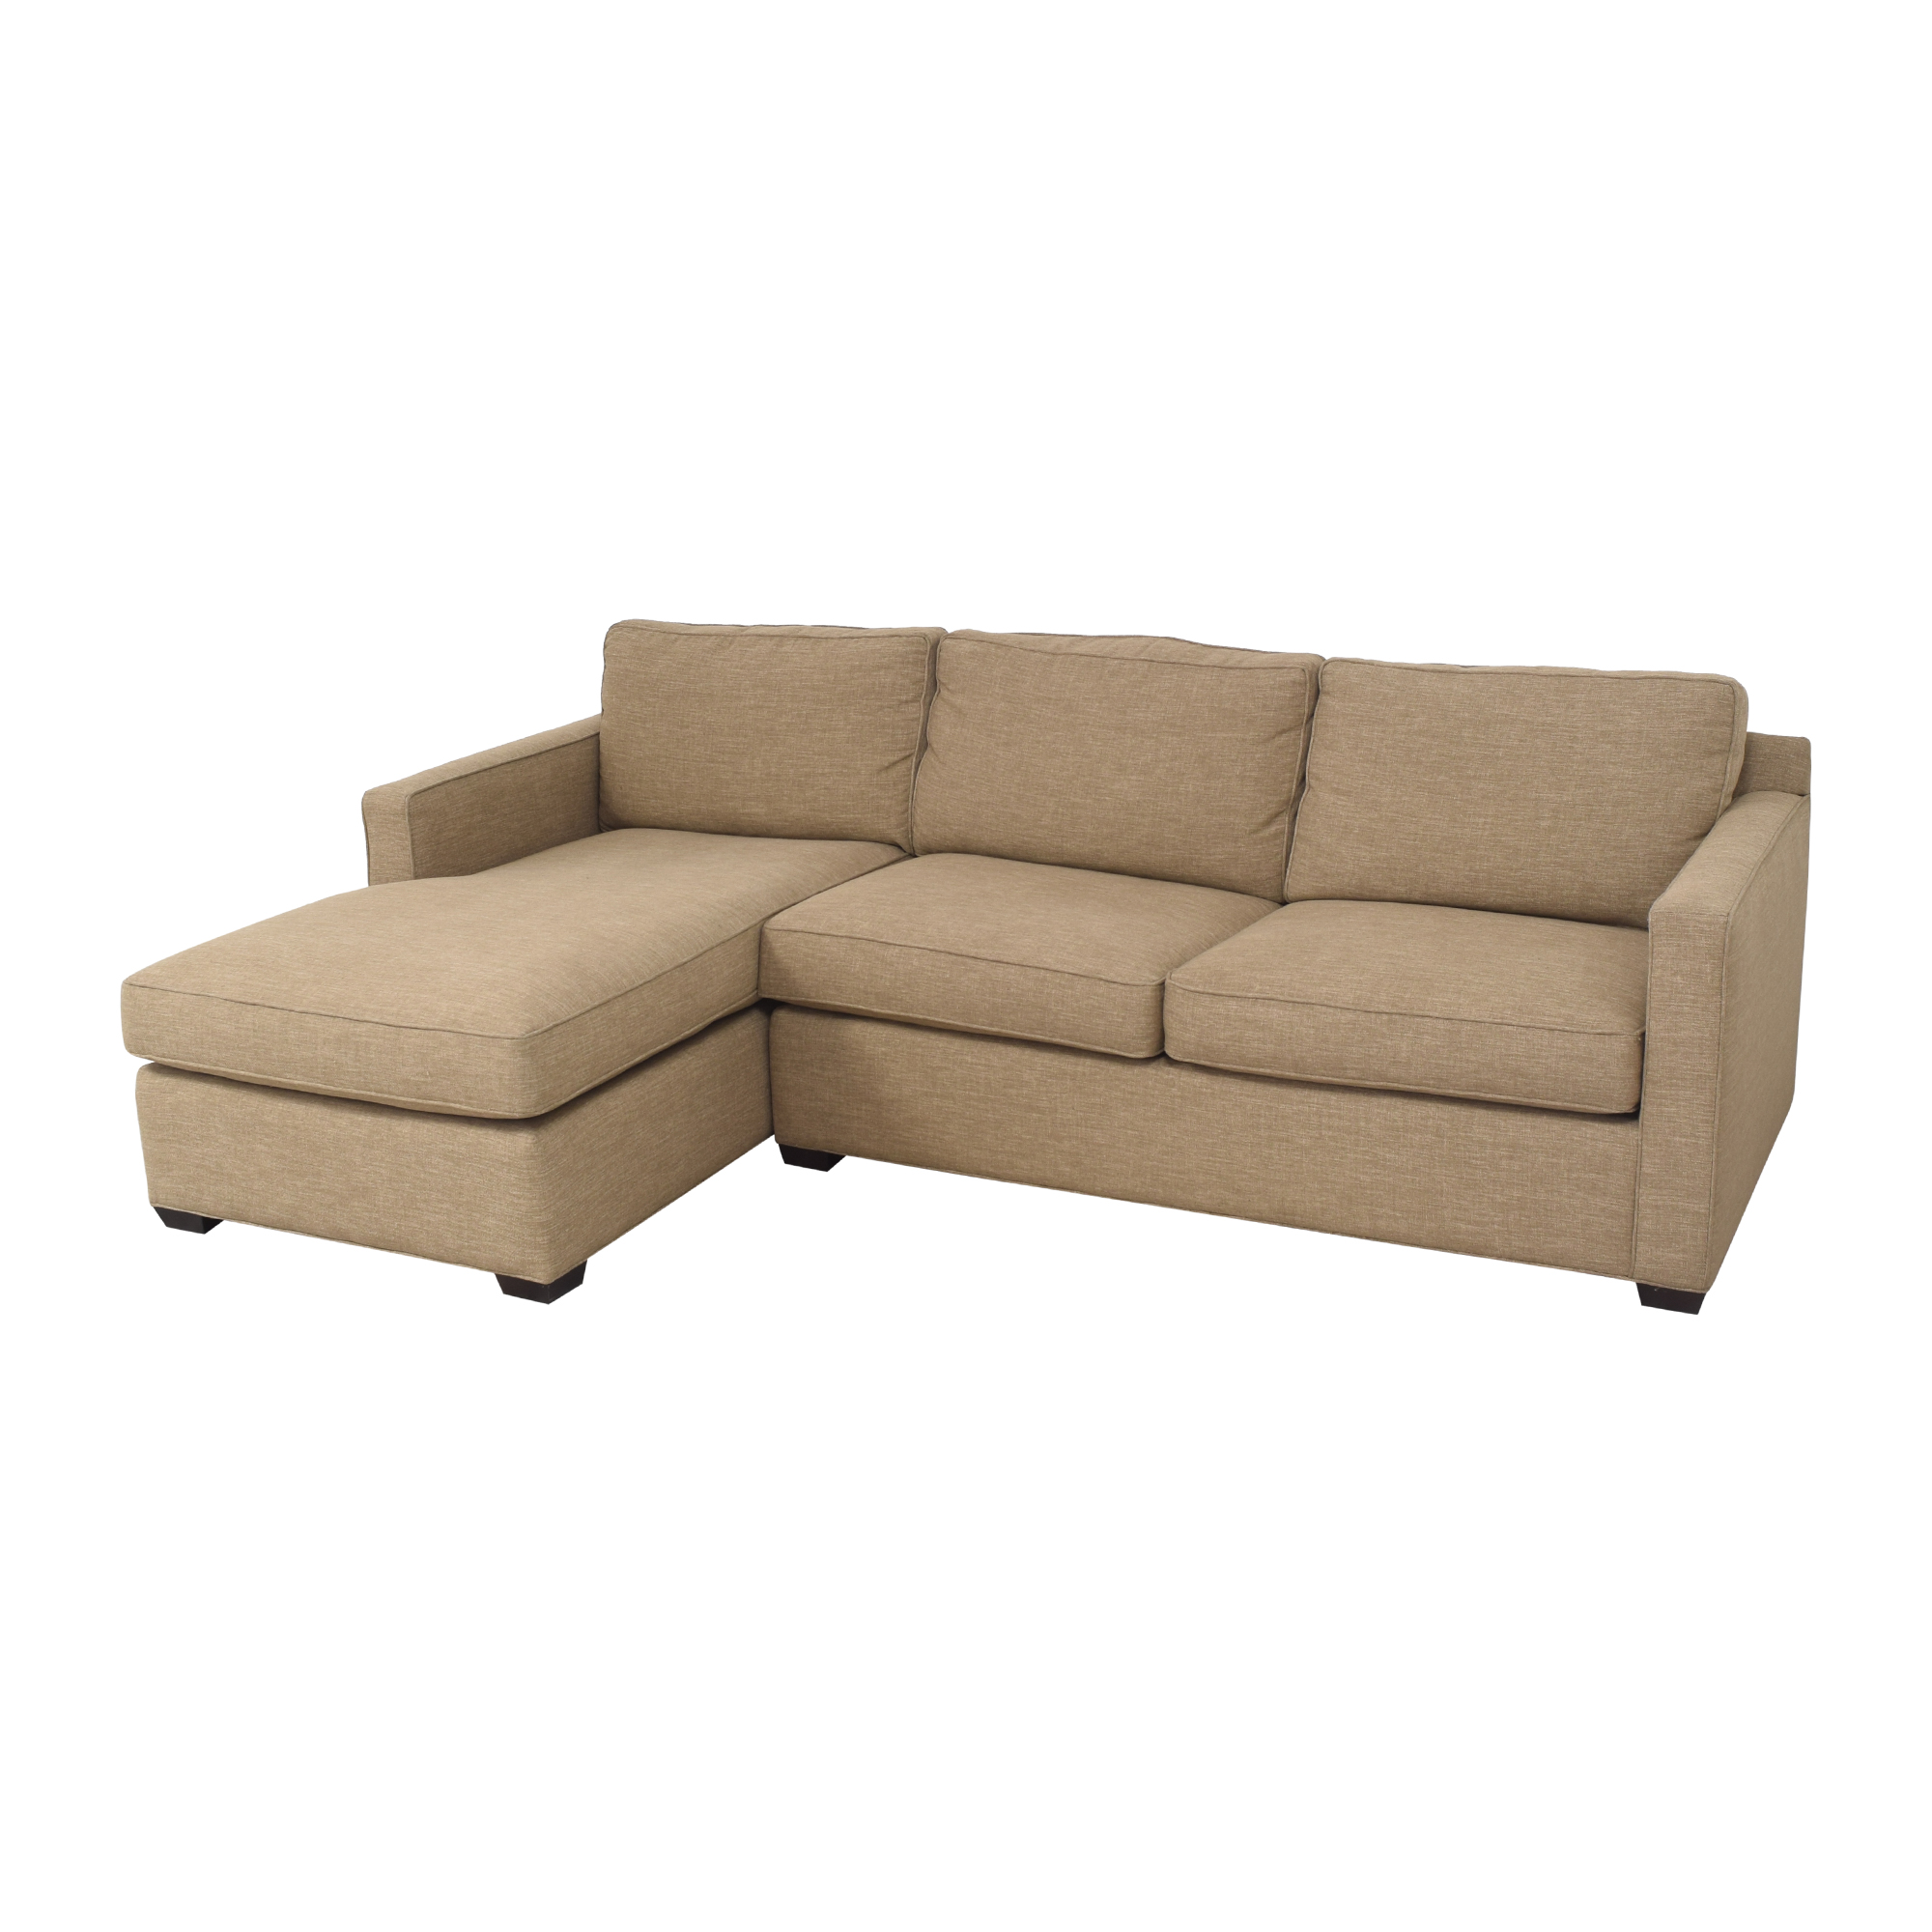 Crate & Barrel Crate & Barrel Sectional Sofa with Chaise discount